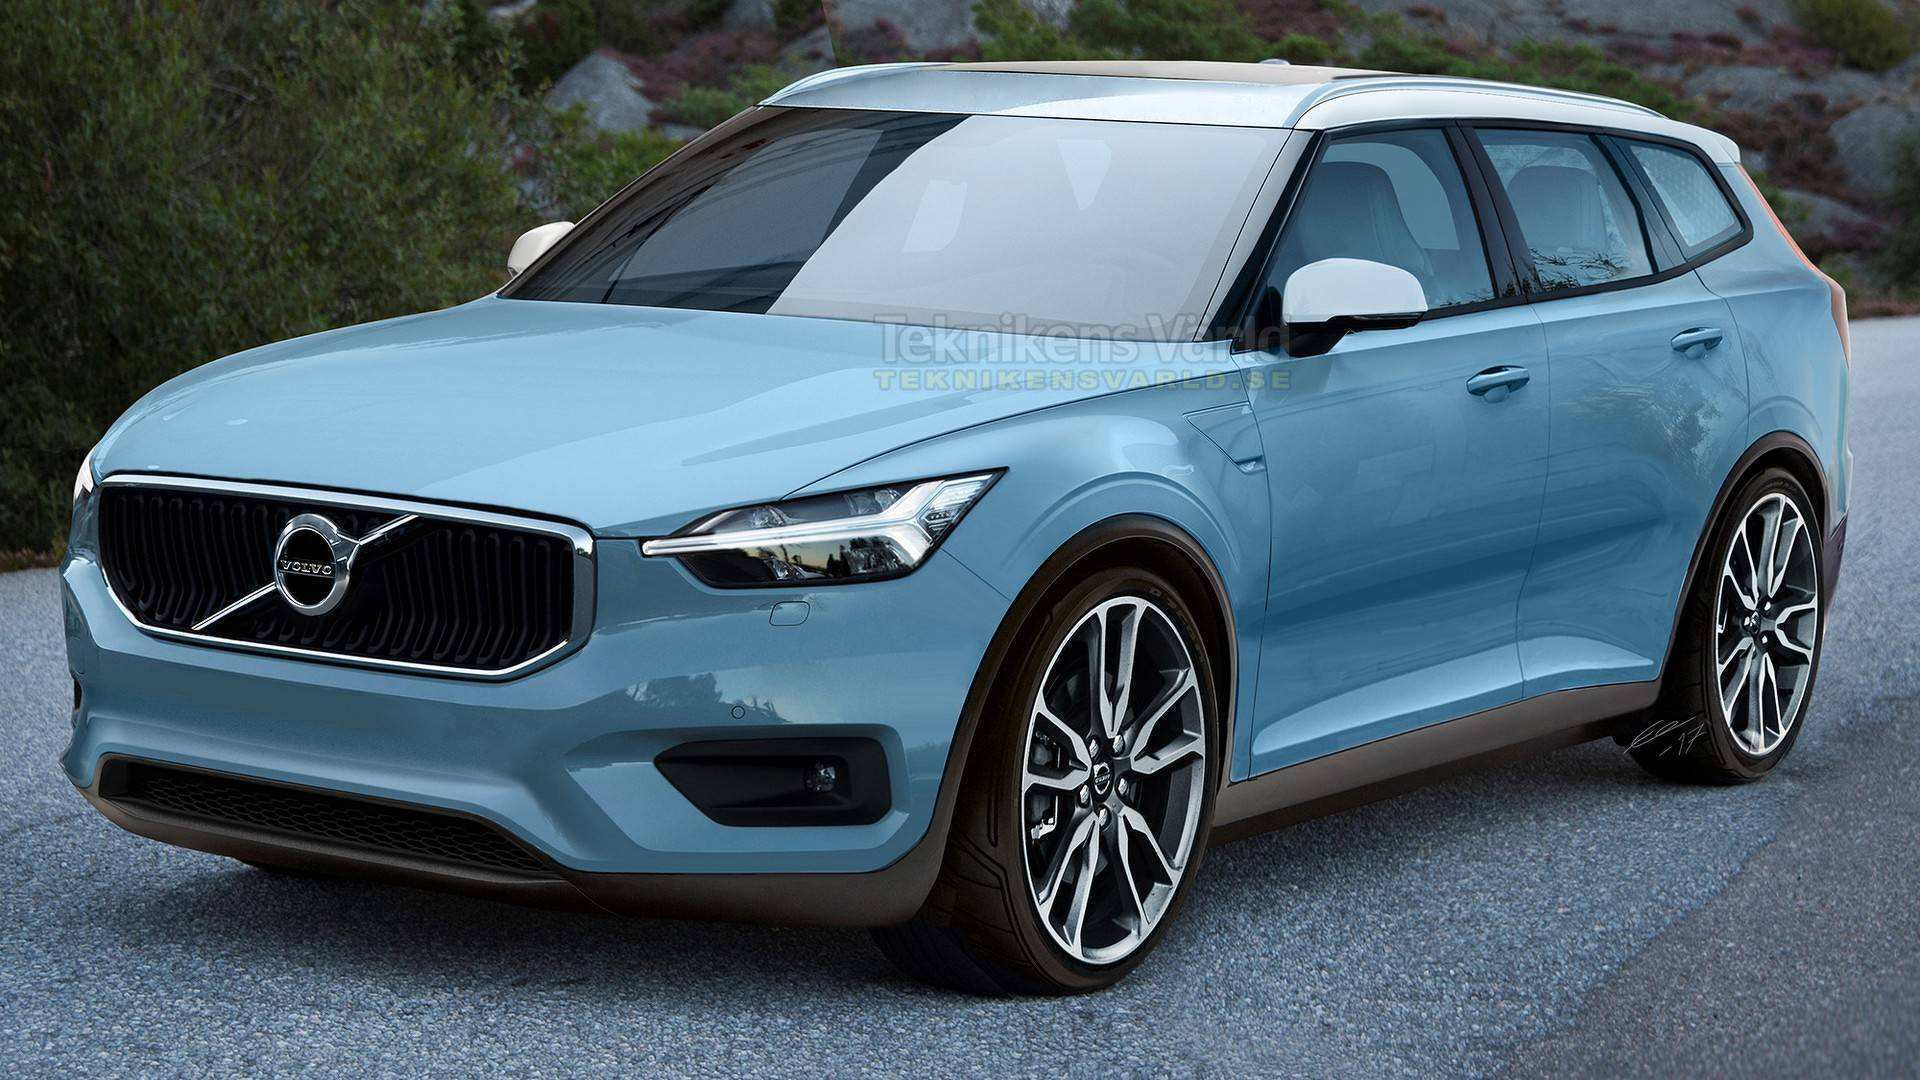 63 Gallery of Volvo V40 2020 Specs and Review with Volvo V40 2020